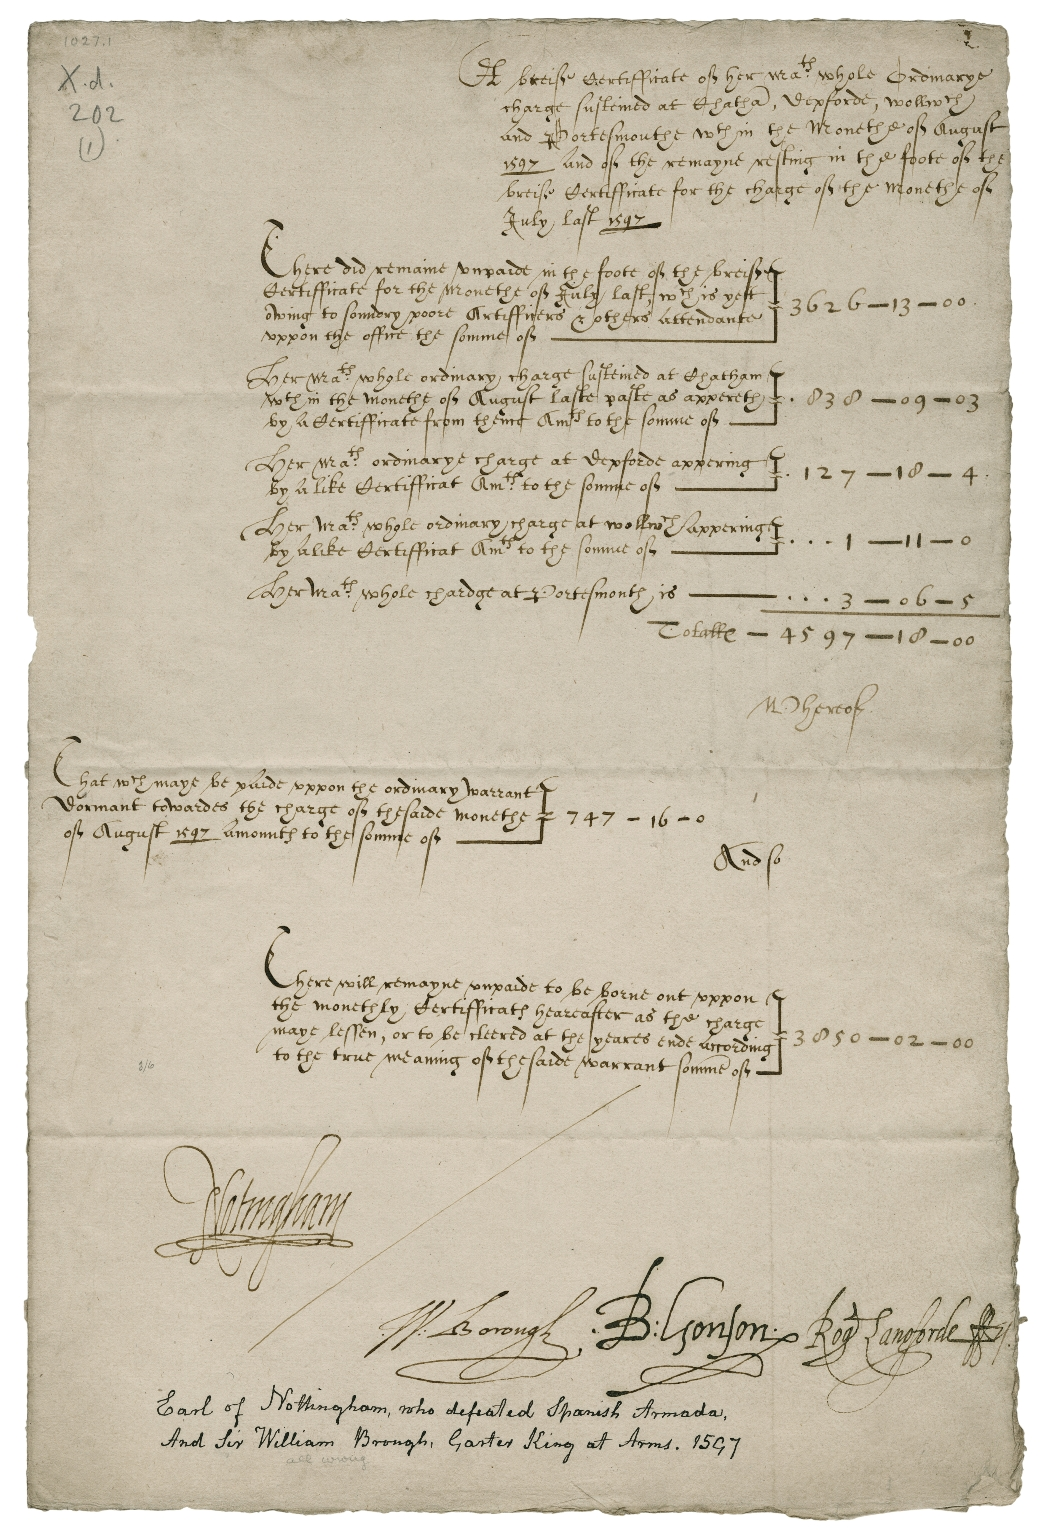 A brief certificate of Her Majesty's ordinary charge at Chatham, Deptford, Woolwich and Portsmouth